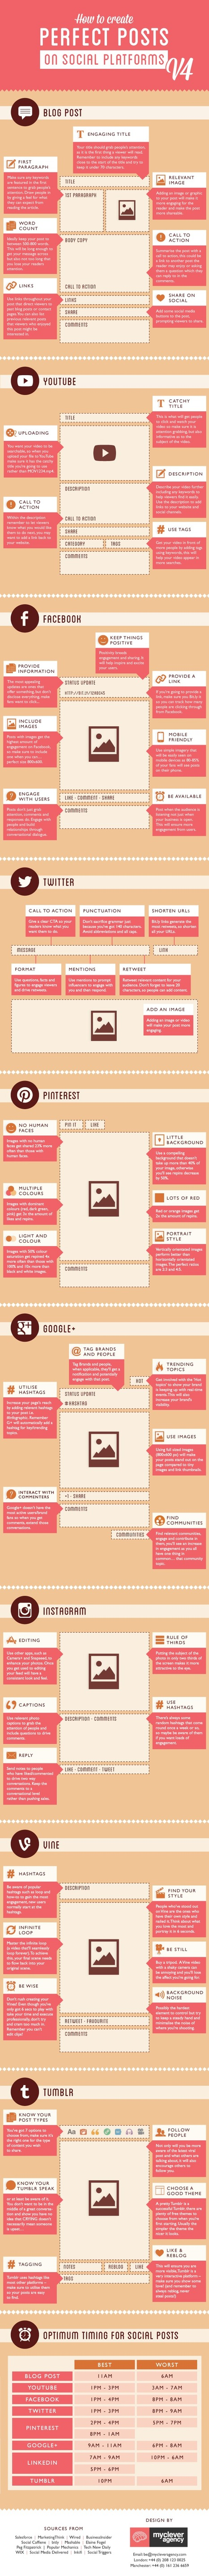 The Art of Creating Perfect Social Media Posts - infographic | comunicazione 2.0 | Scoop.it